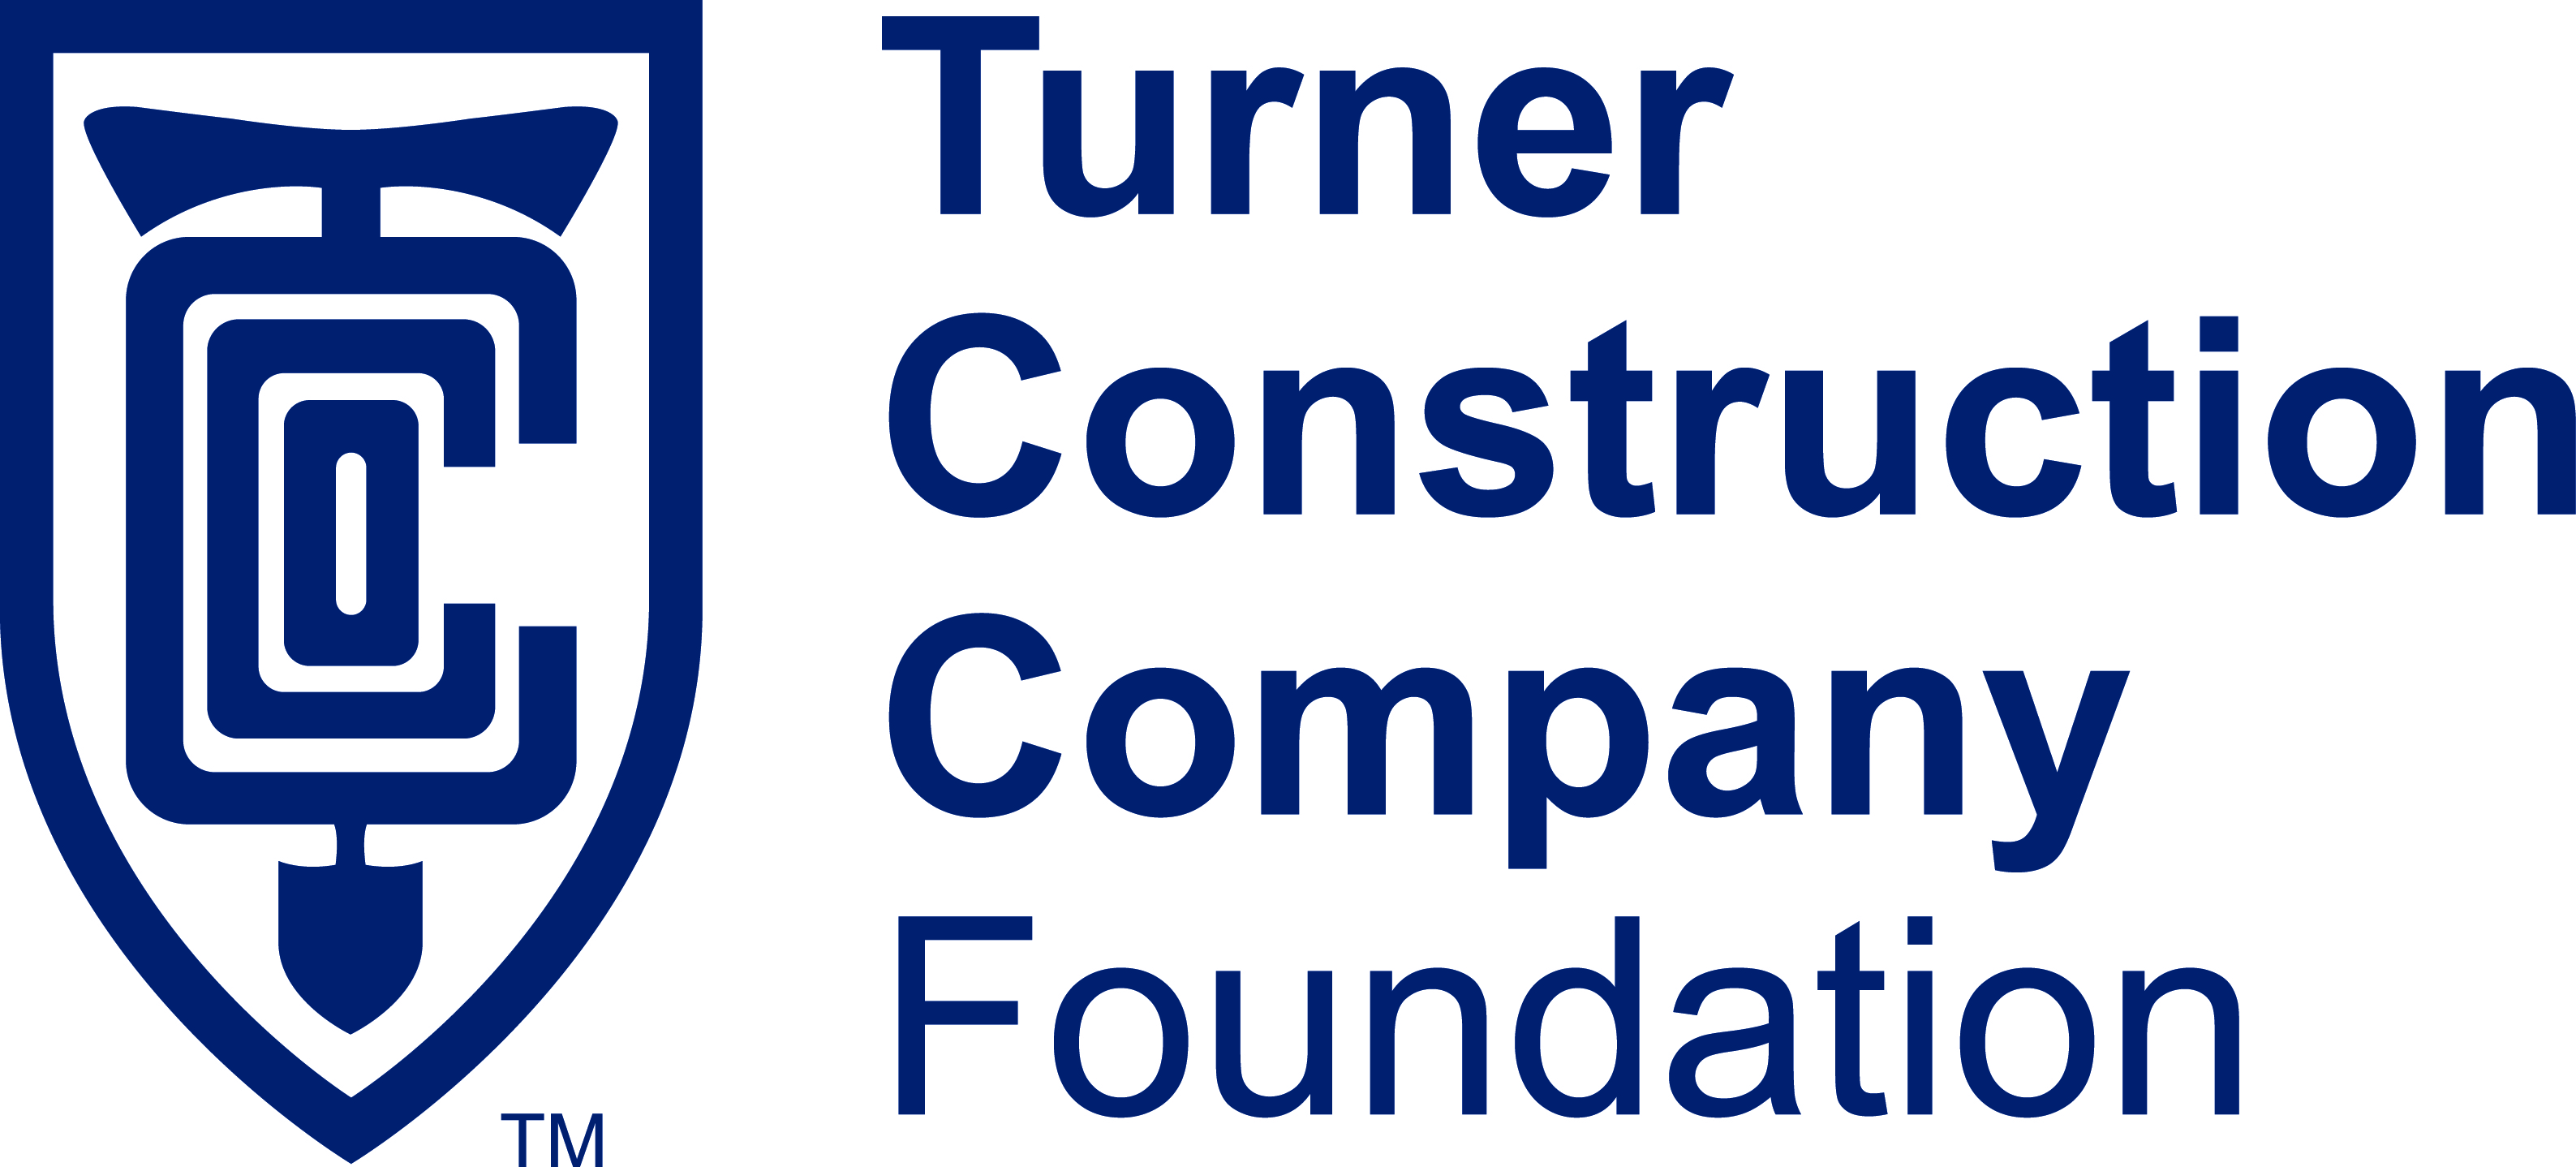 TurnerConstructionCompanyFoundationClusterTM.jpg